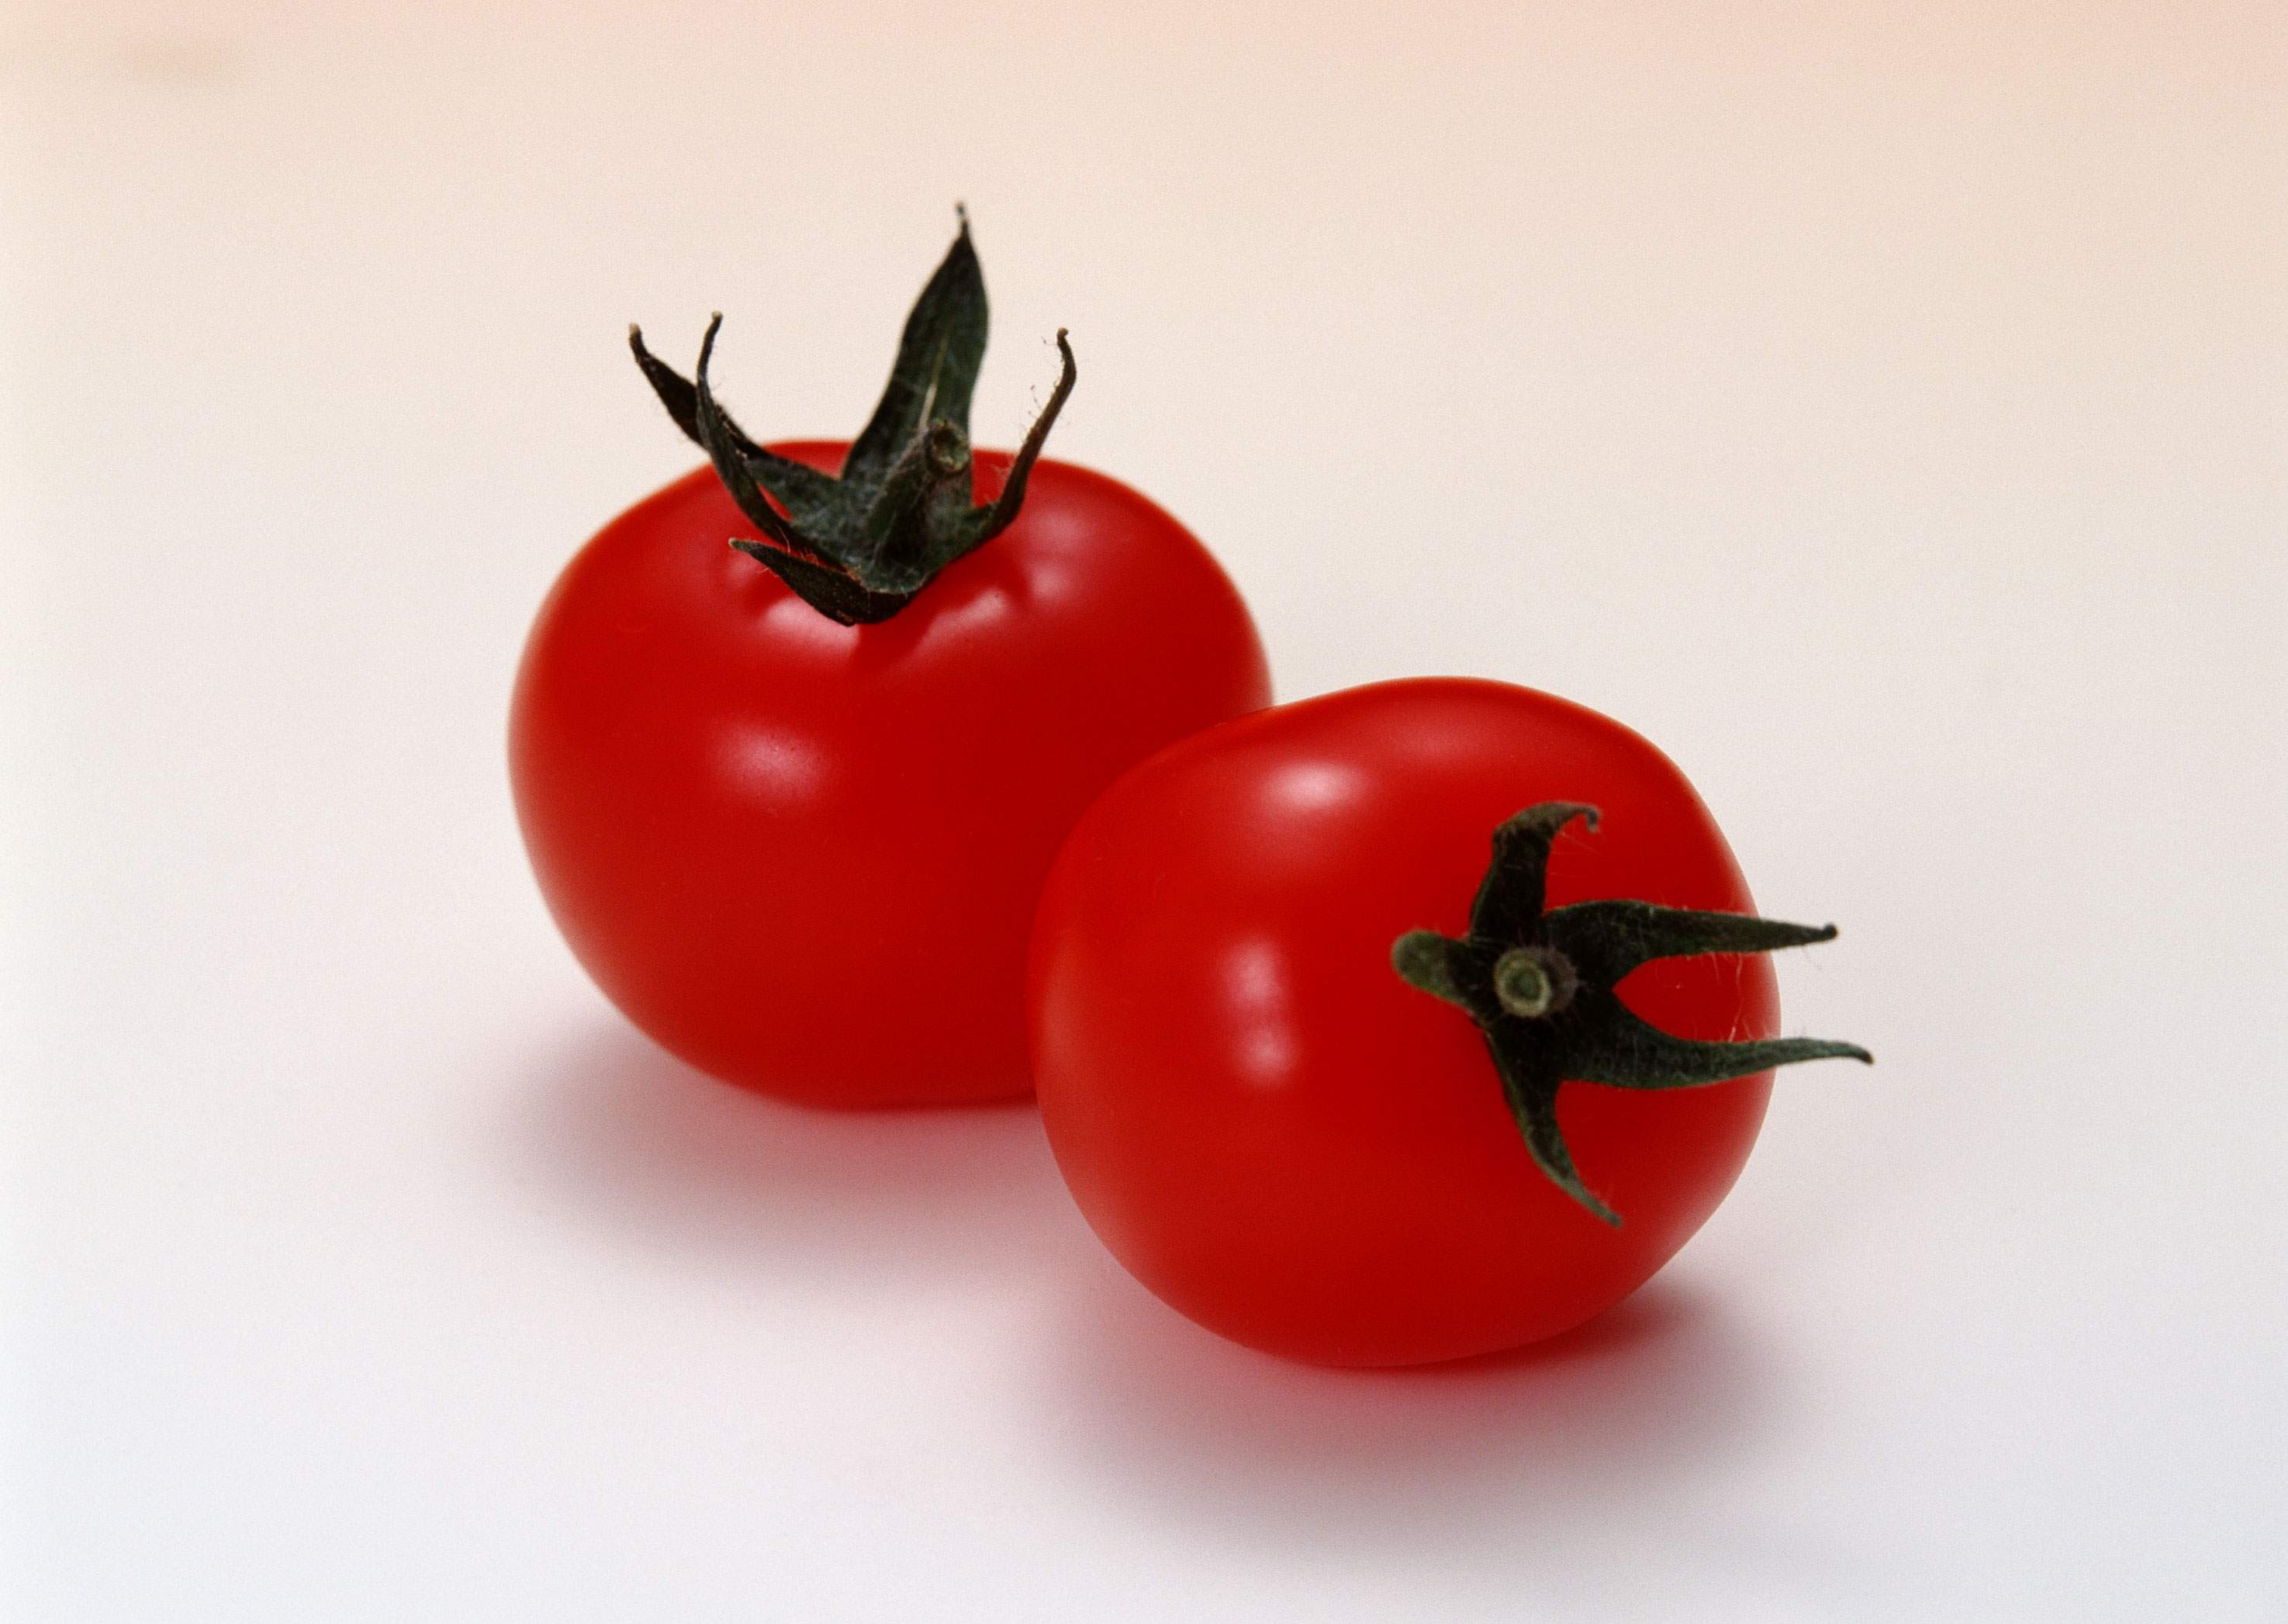 Free download high resolution image - free image free photo free stock image public domain picture -two red ripe tomatoes